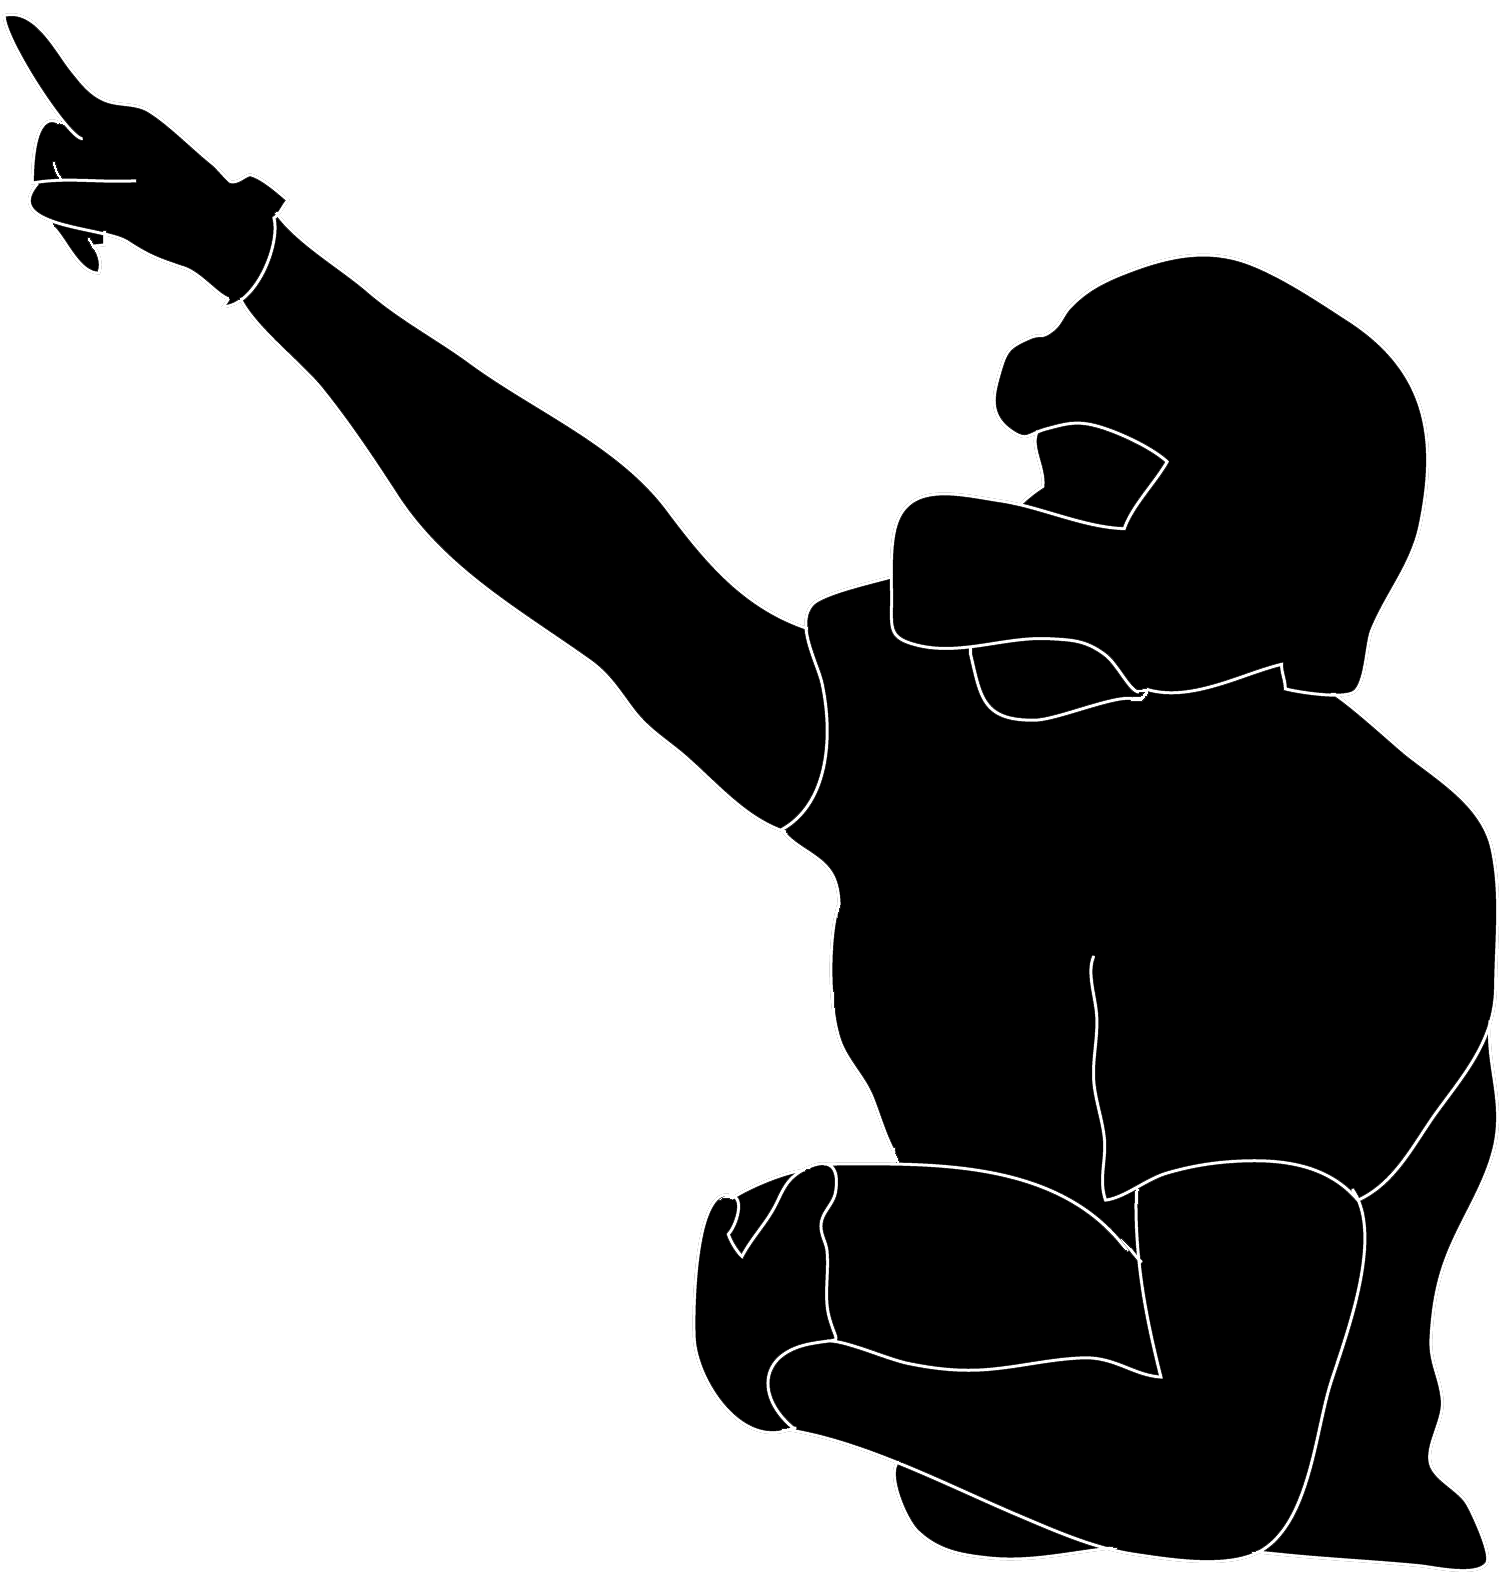 Football player clipart images svg royalty free library Nfl Silhouette at GetDrawings.com | Free for personal use Nfl ... svg royalty free library